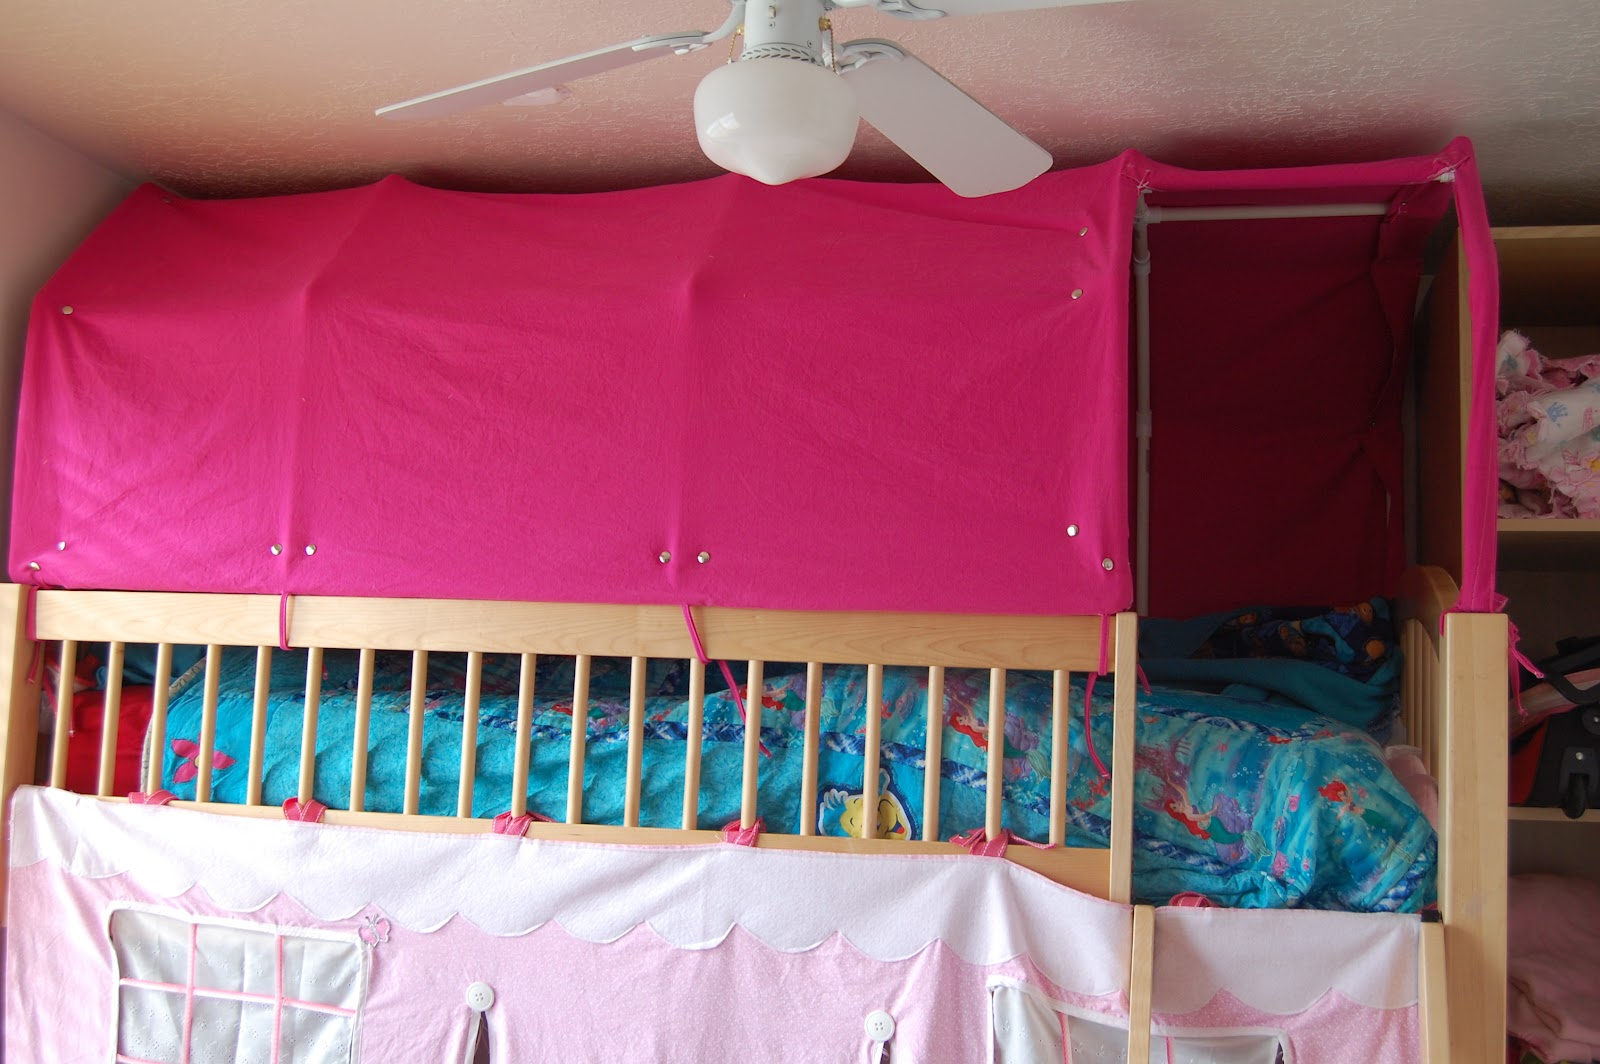 Everyone S Excited And Confused Pictures Of The Top Bunk